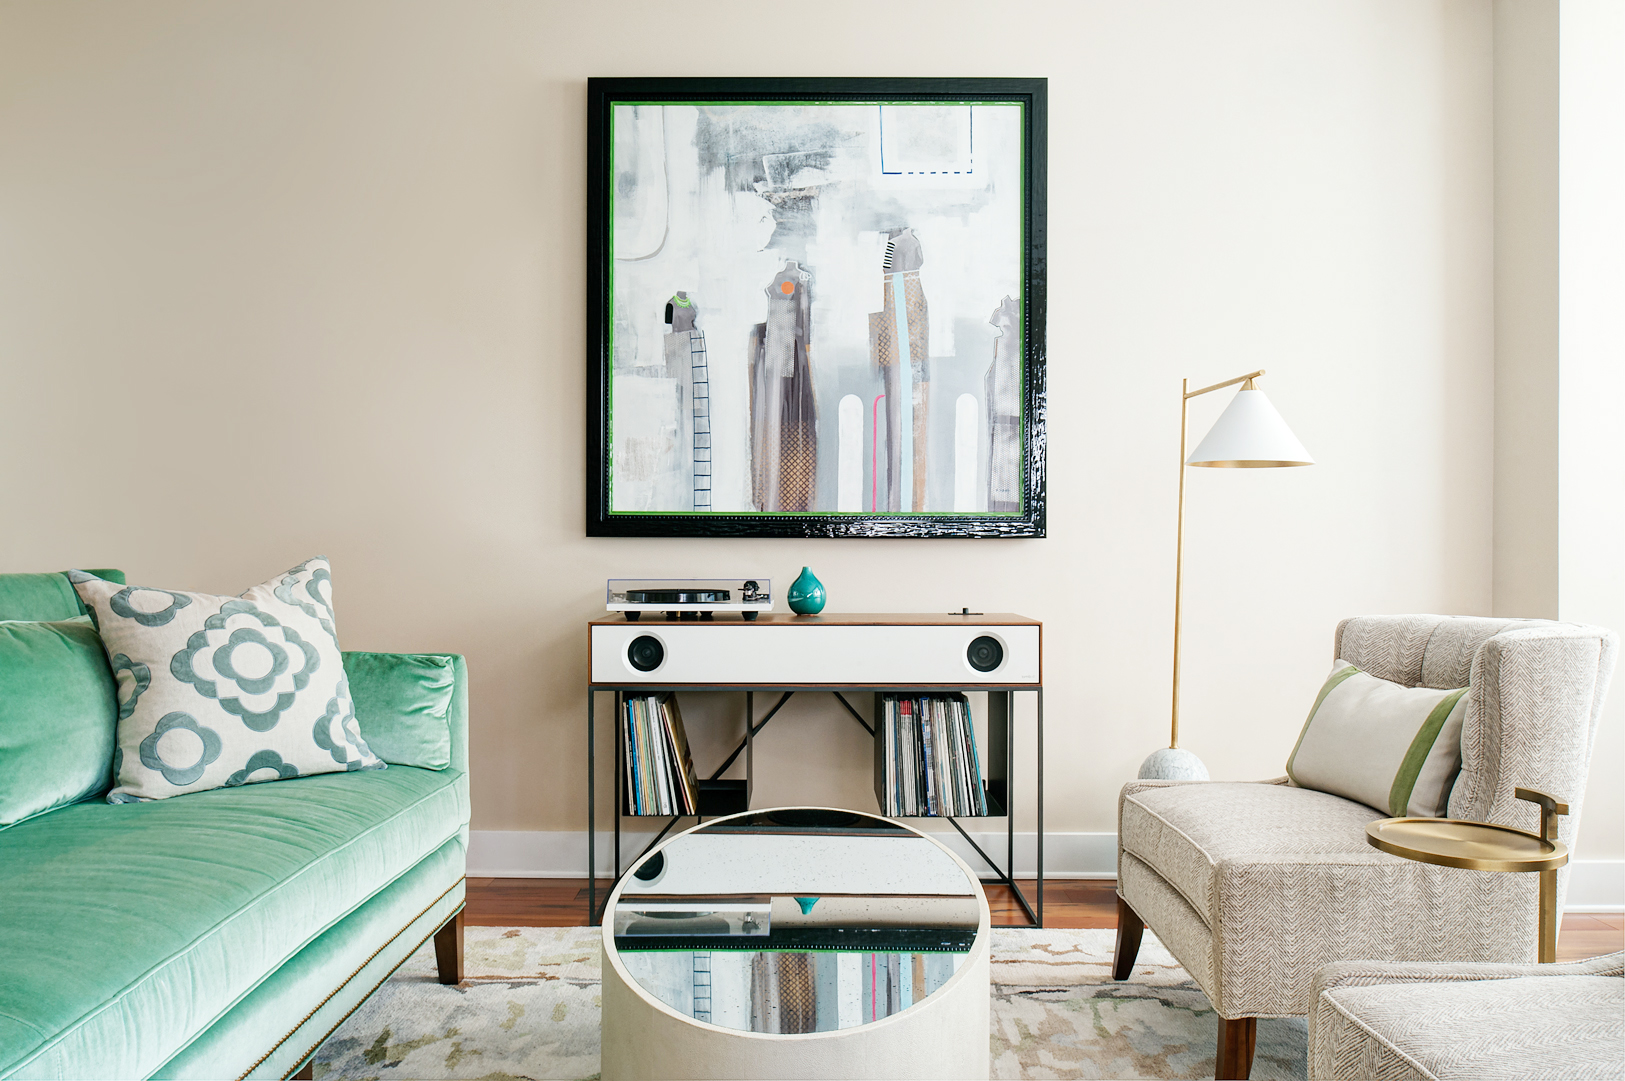 4 Tips For Selecting Artwork Glenna Stone Interior Design